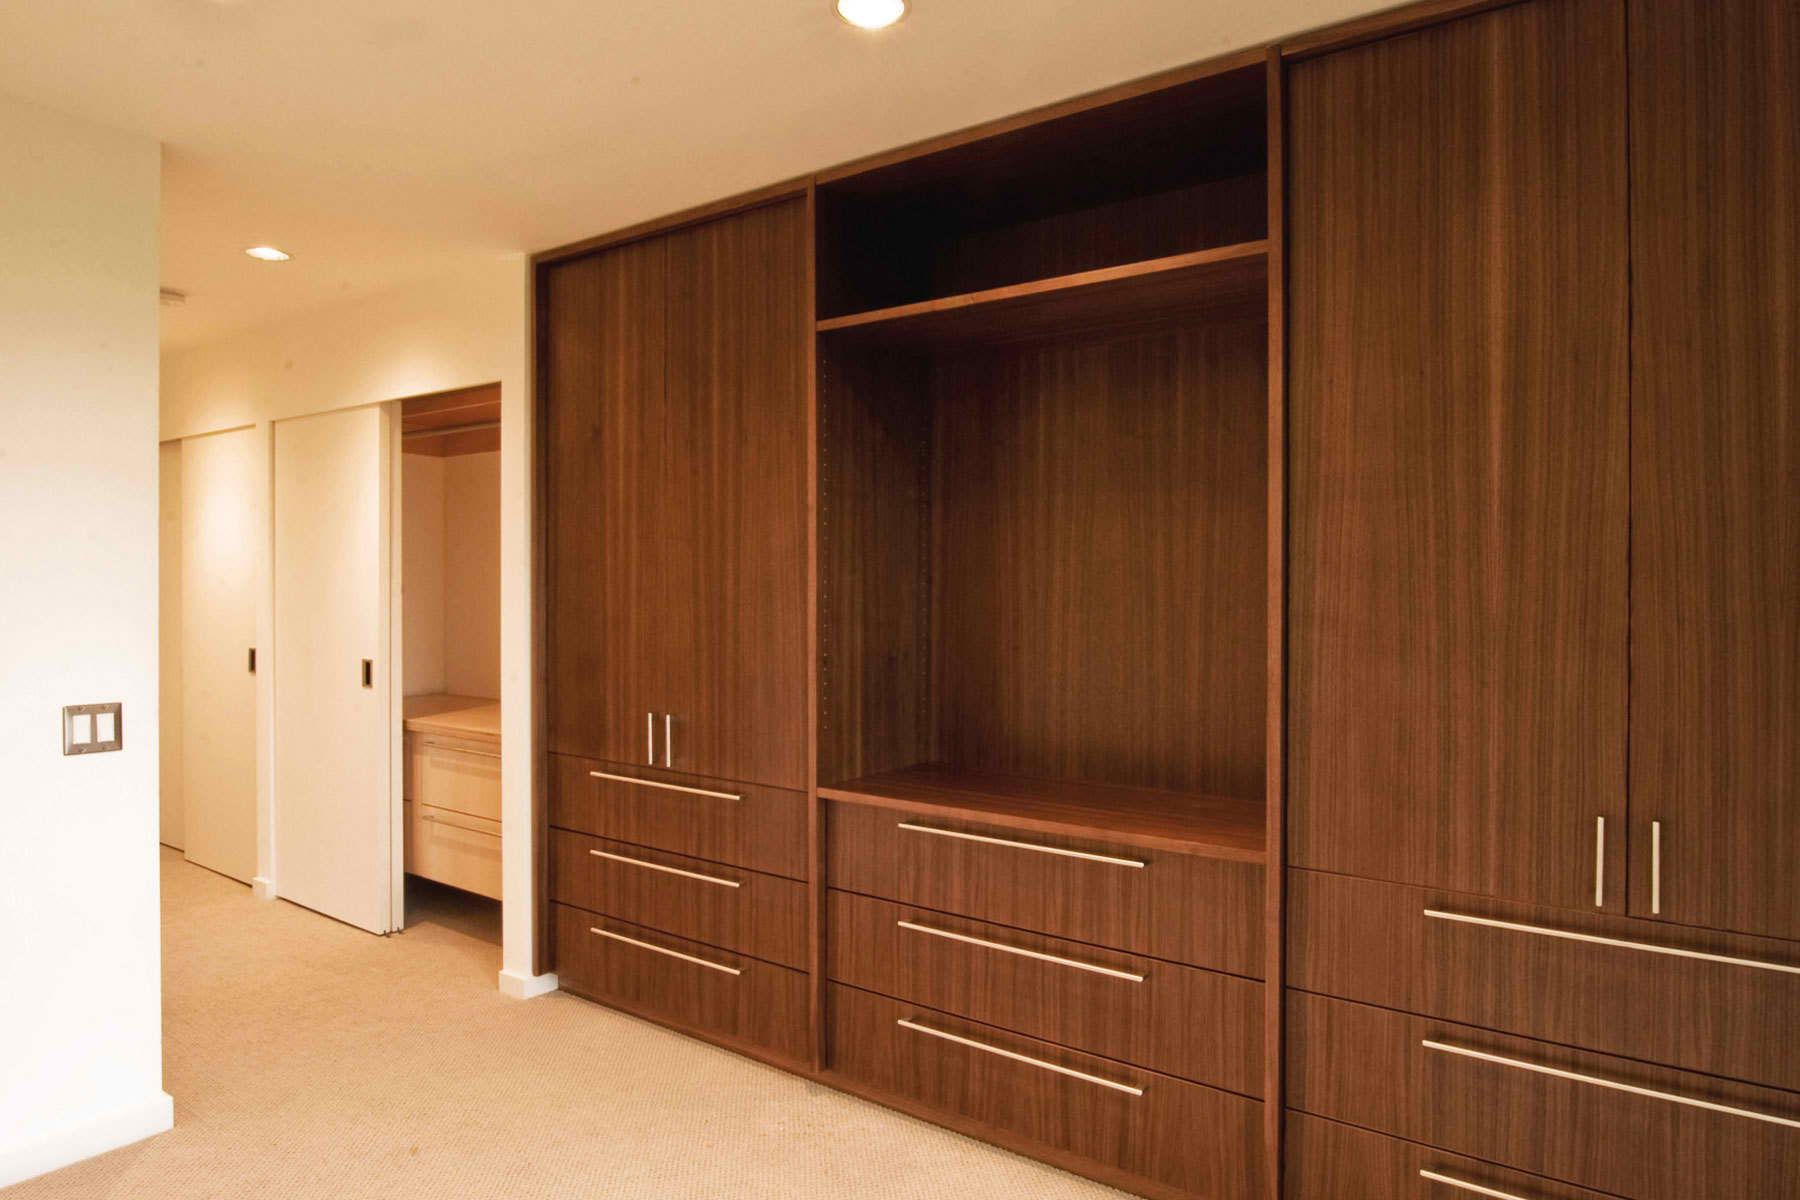 Bedroom Cabinet Design Master Bed Cabinets Style Wall Nut Bedroom Cabinets #kbhomes  My